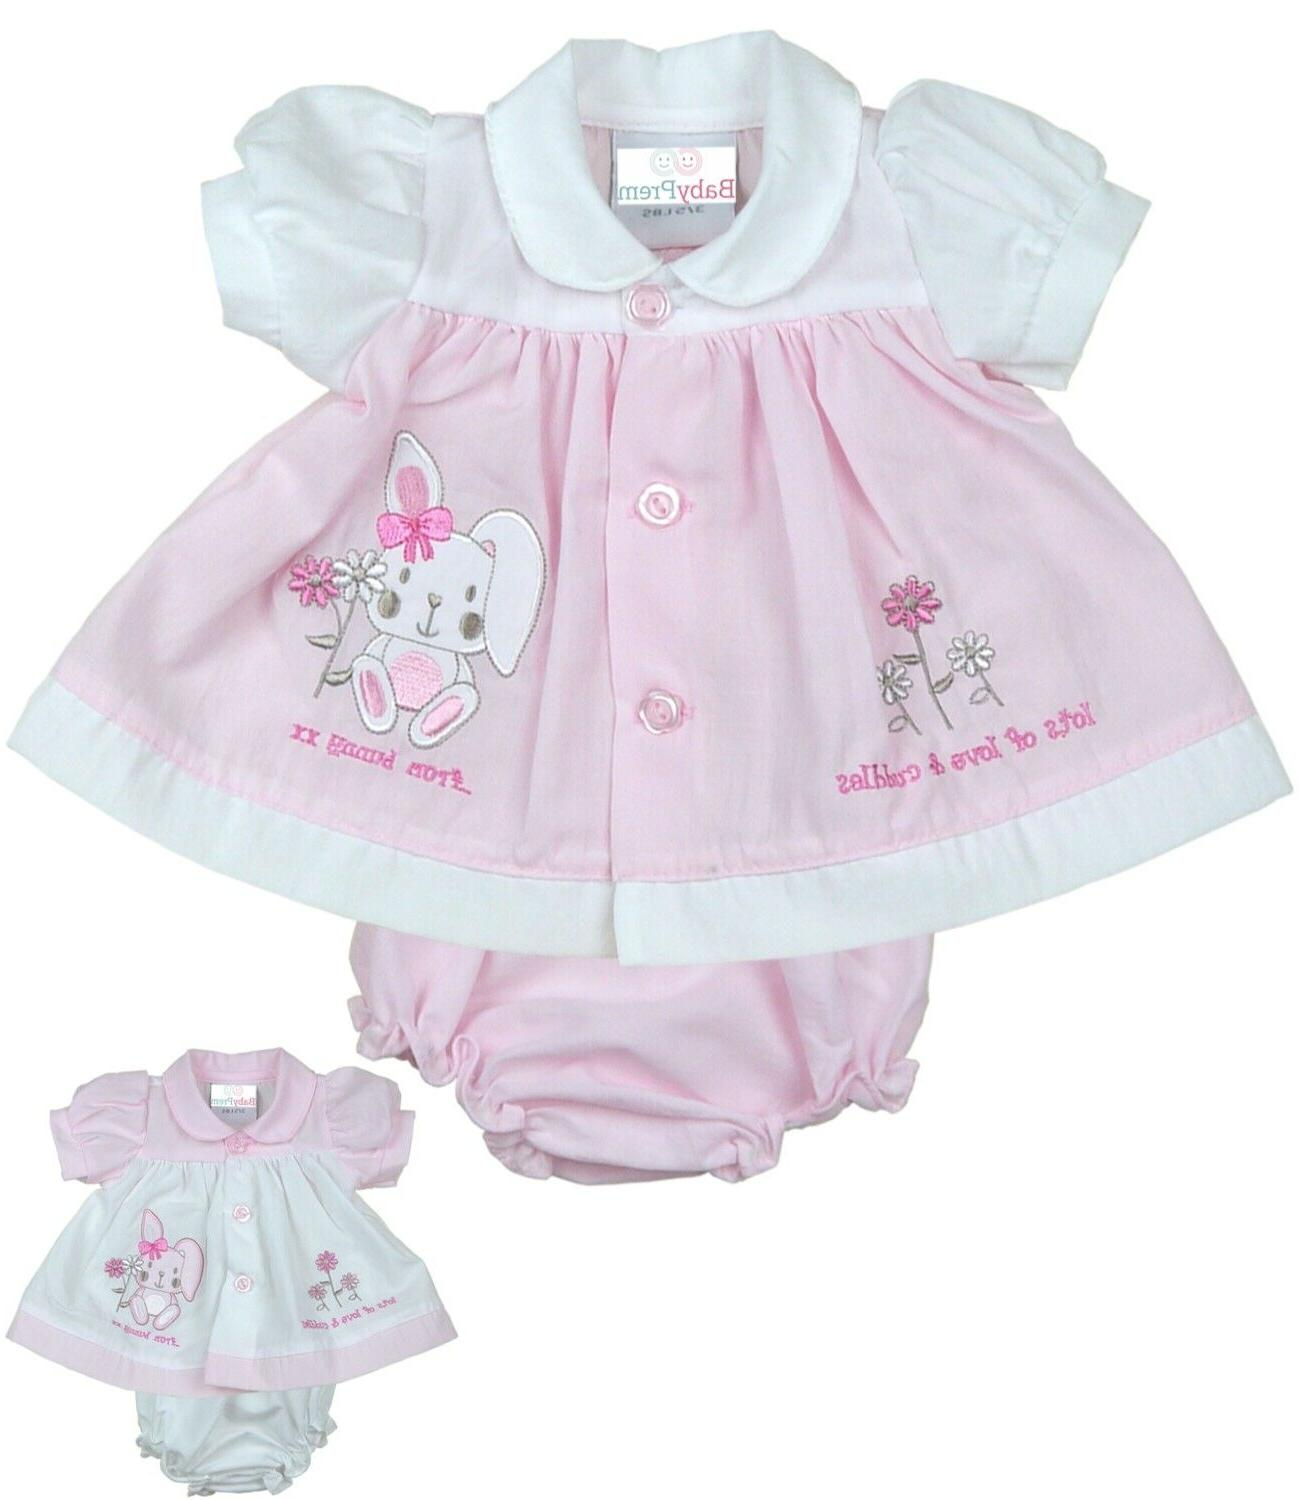 preemie micro baby clothes girls dresses pink